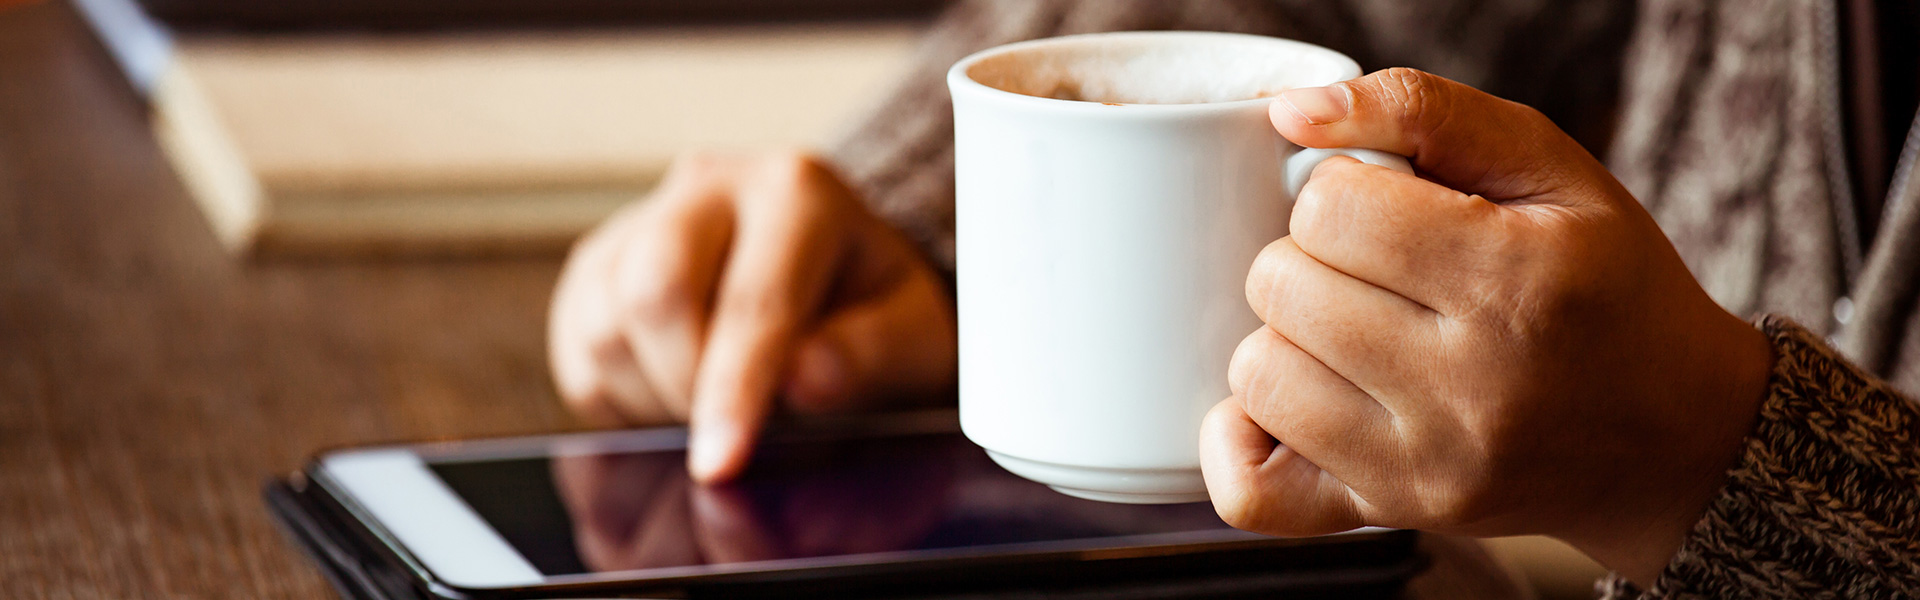 Someone's hands holding a coffee and using an ipad